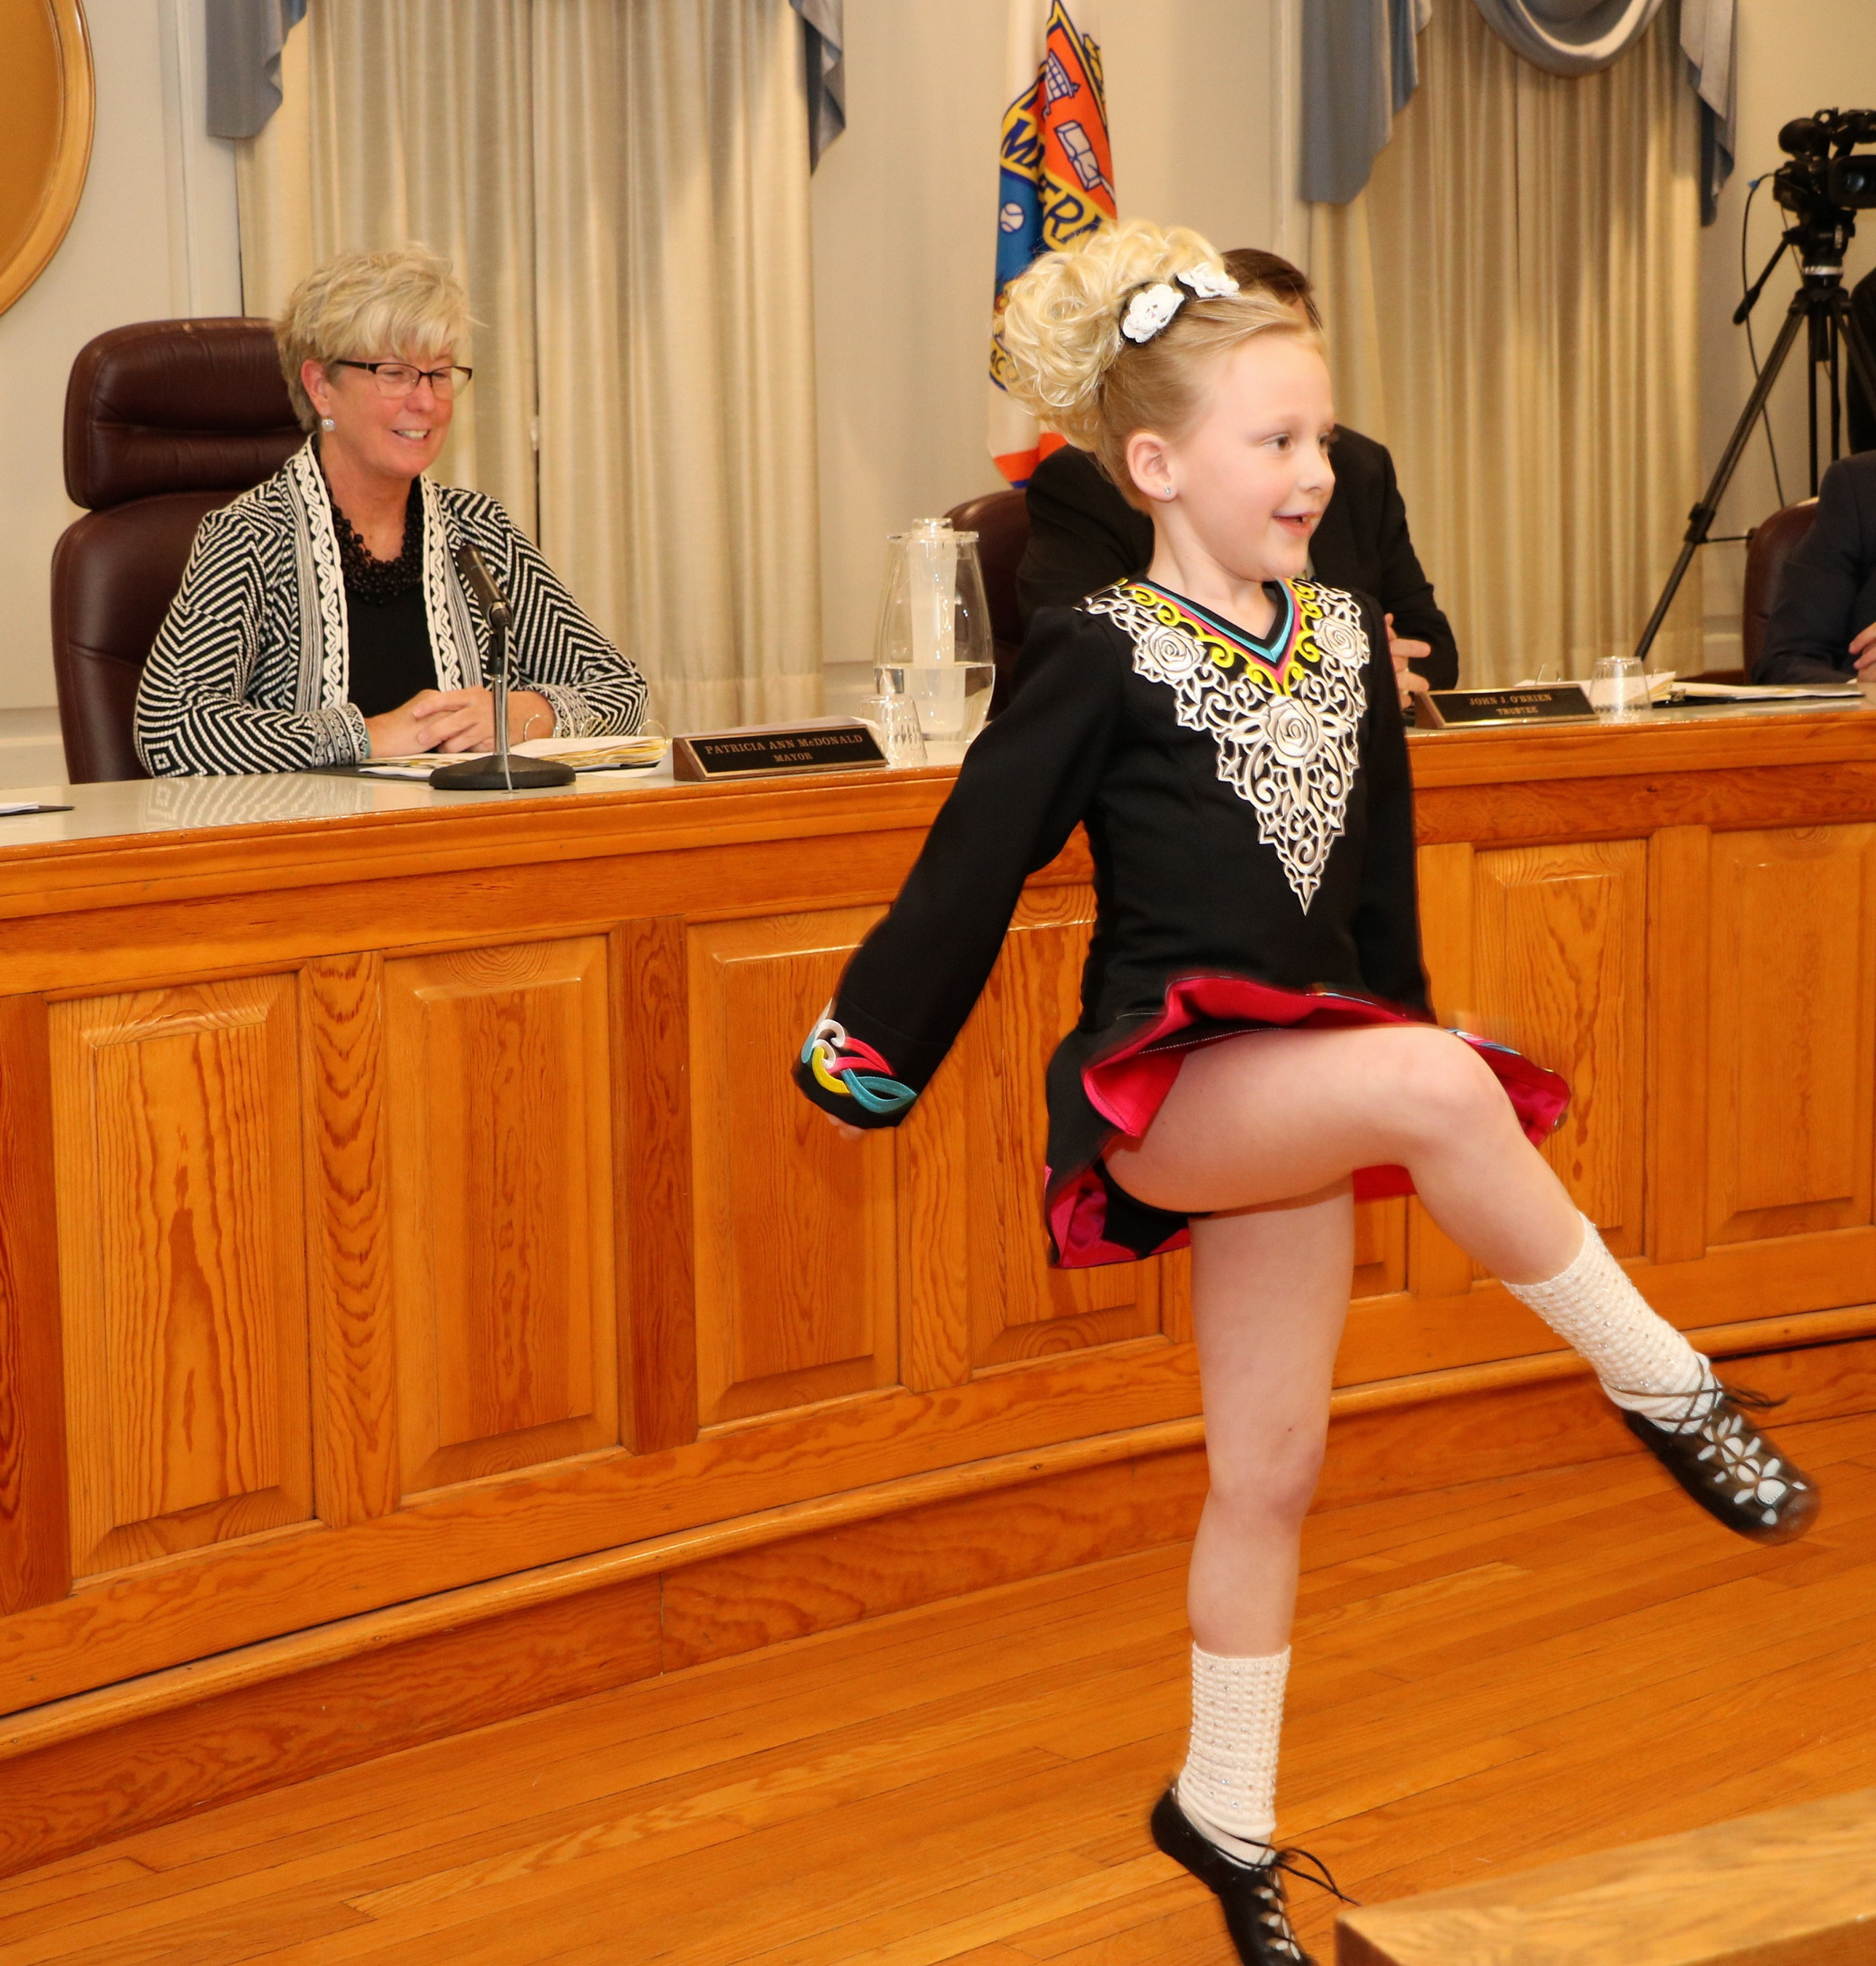 Malverne Mayor Patti Ann McDonald enjoyed an Irish step dance performed by Maeve Ledwith, 7, at the March Village Board meeting.